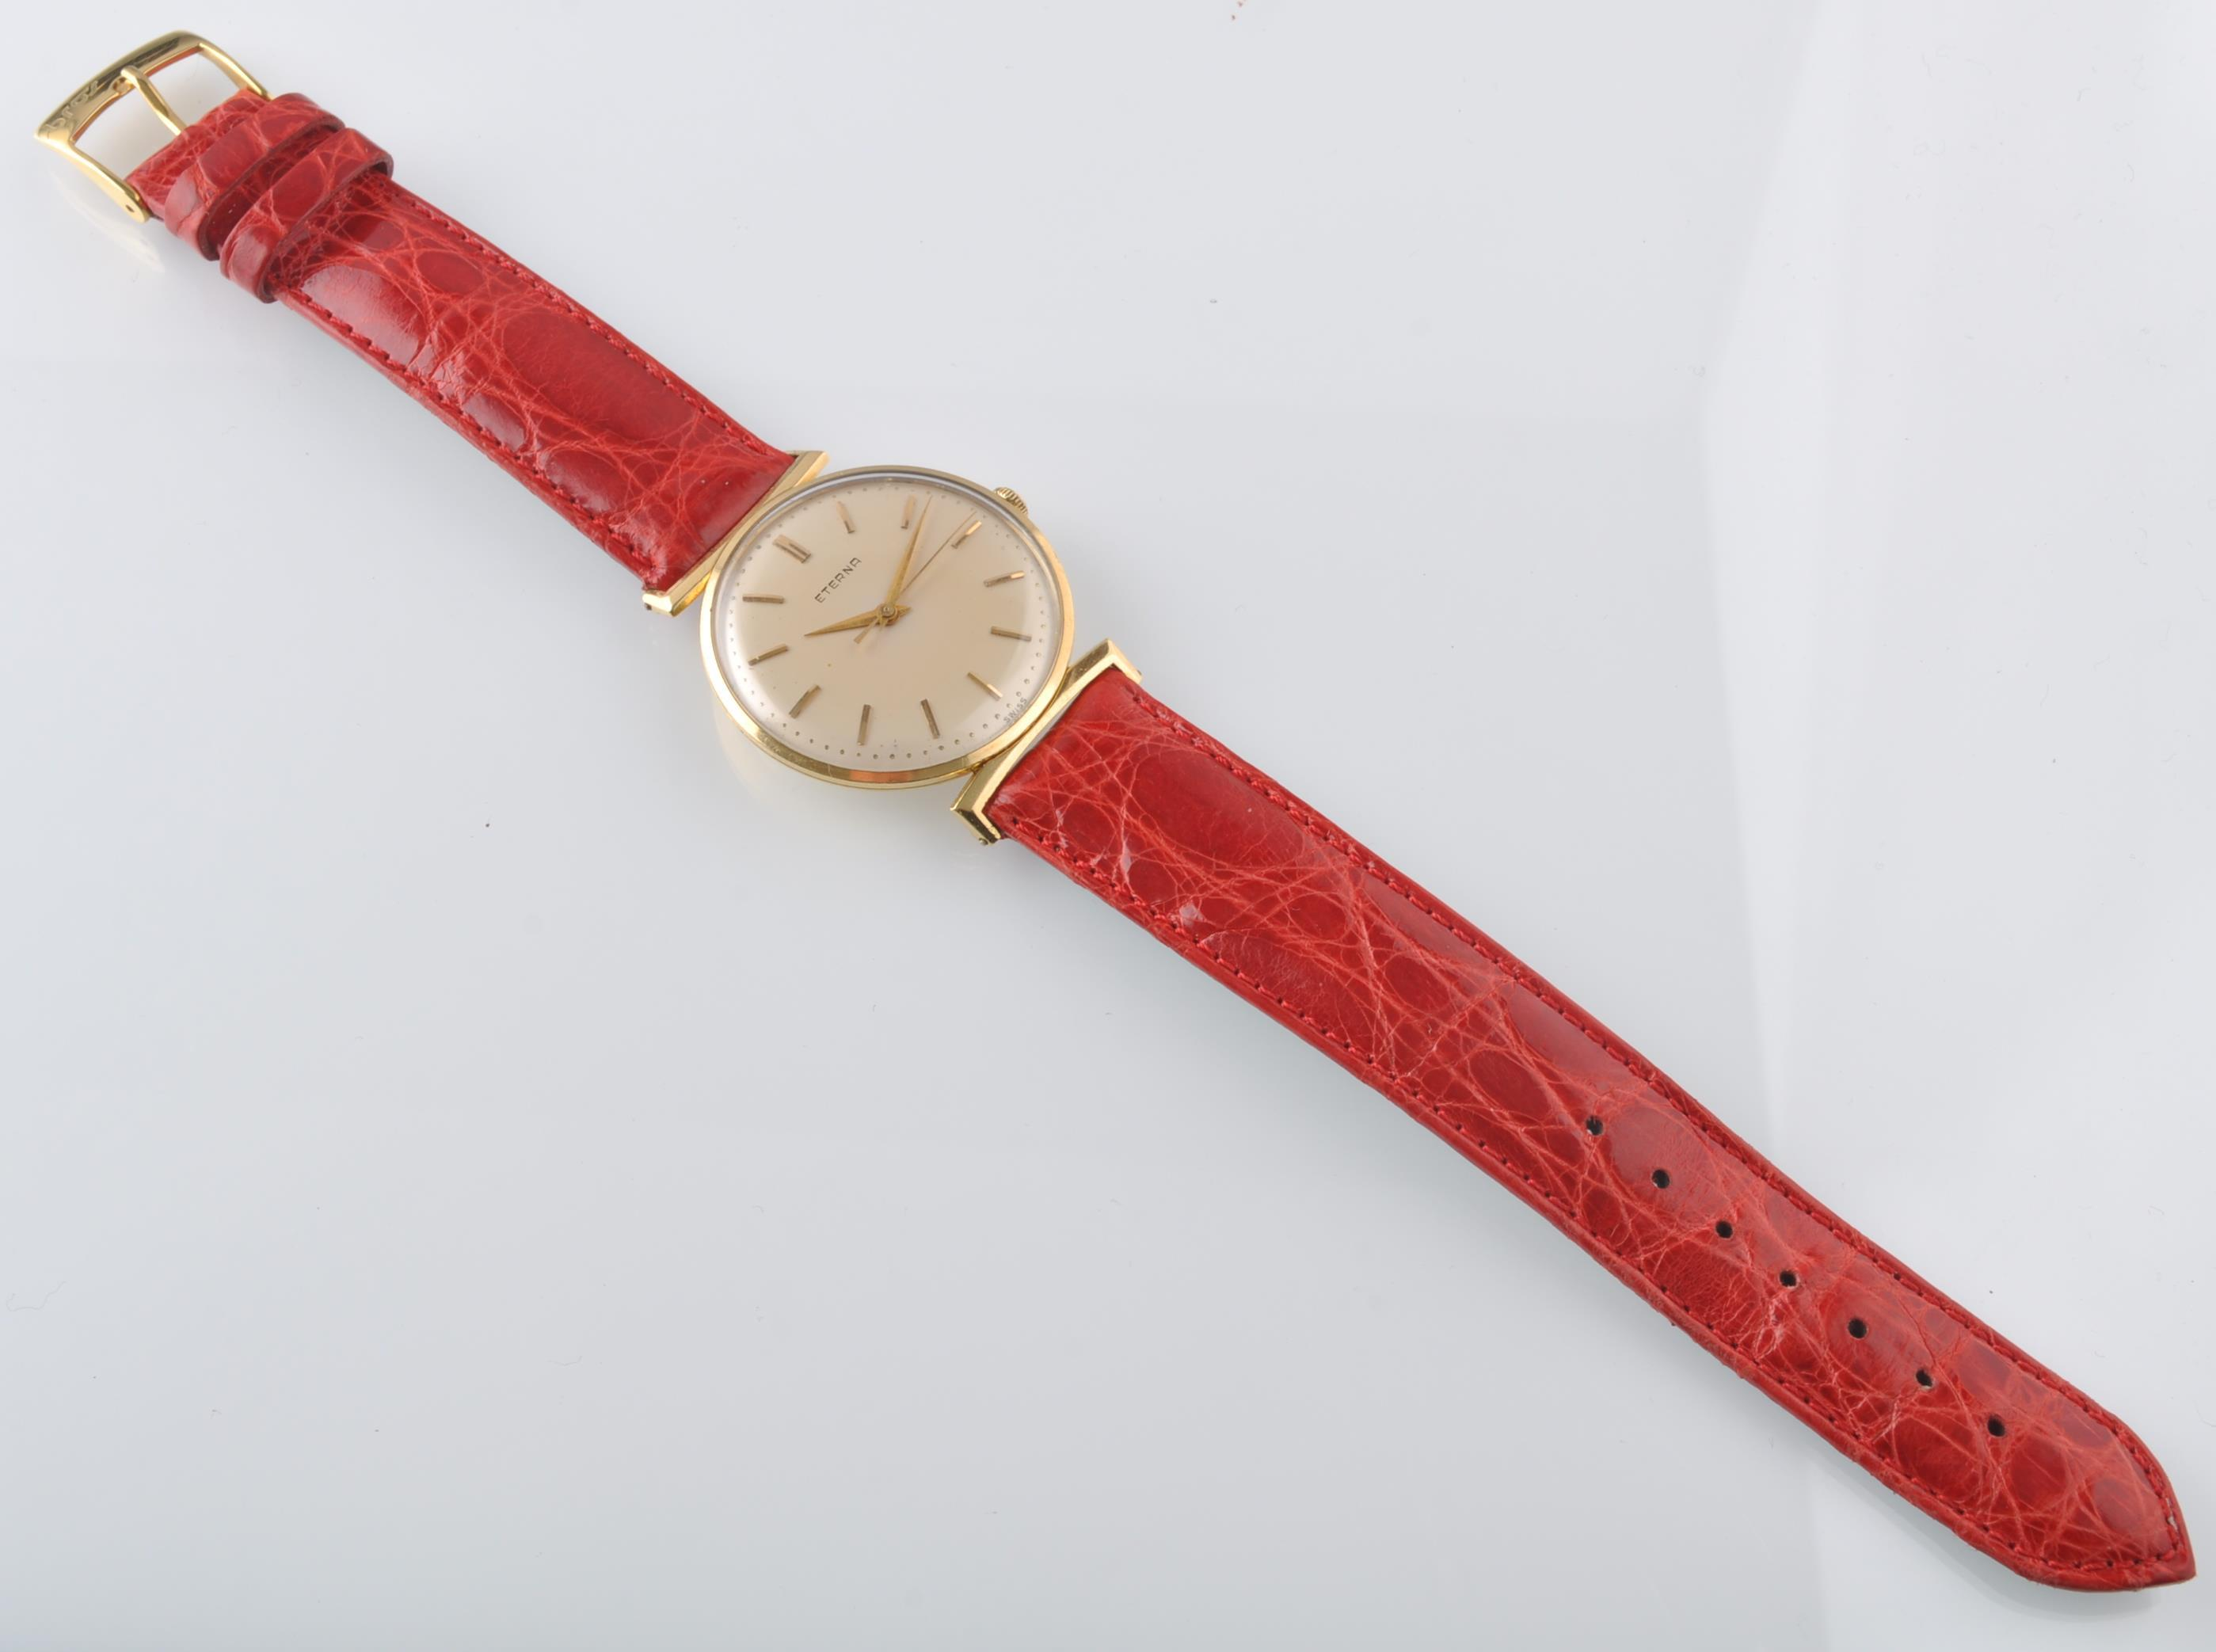 ETERNA 18CT GOLD 1950'S VINTAGE WRIST WATCH - Image 9 of 9